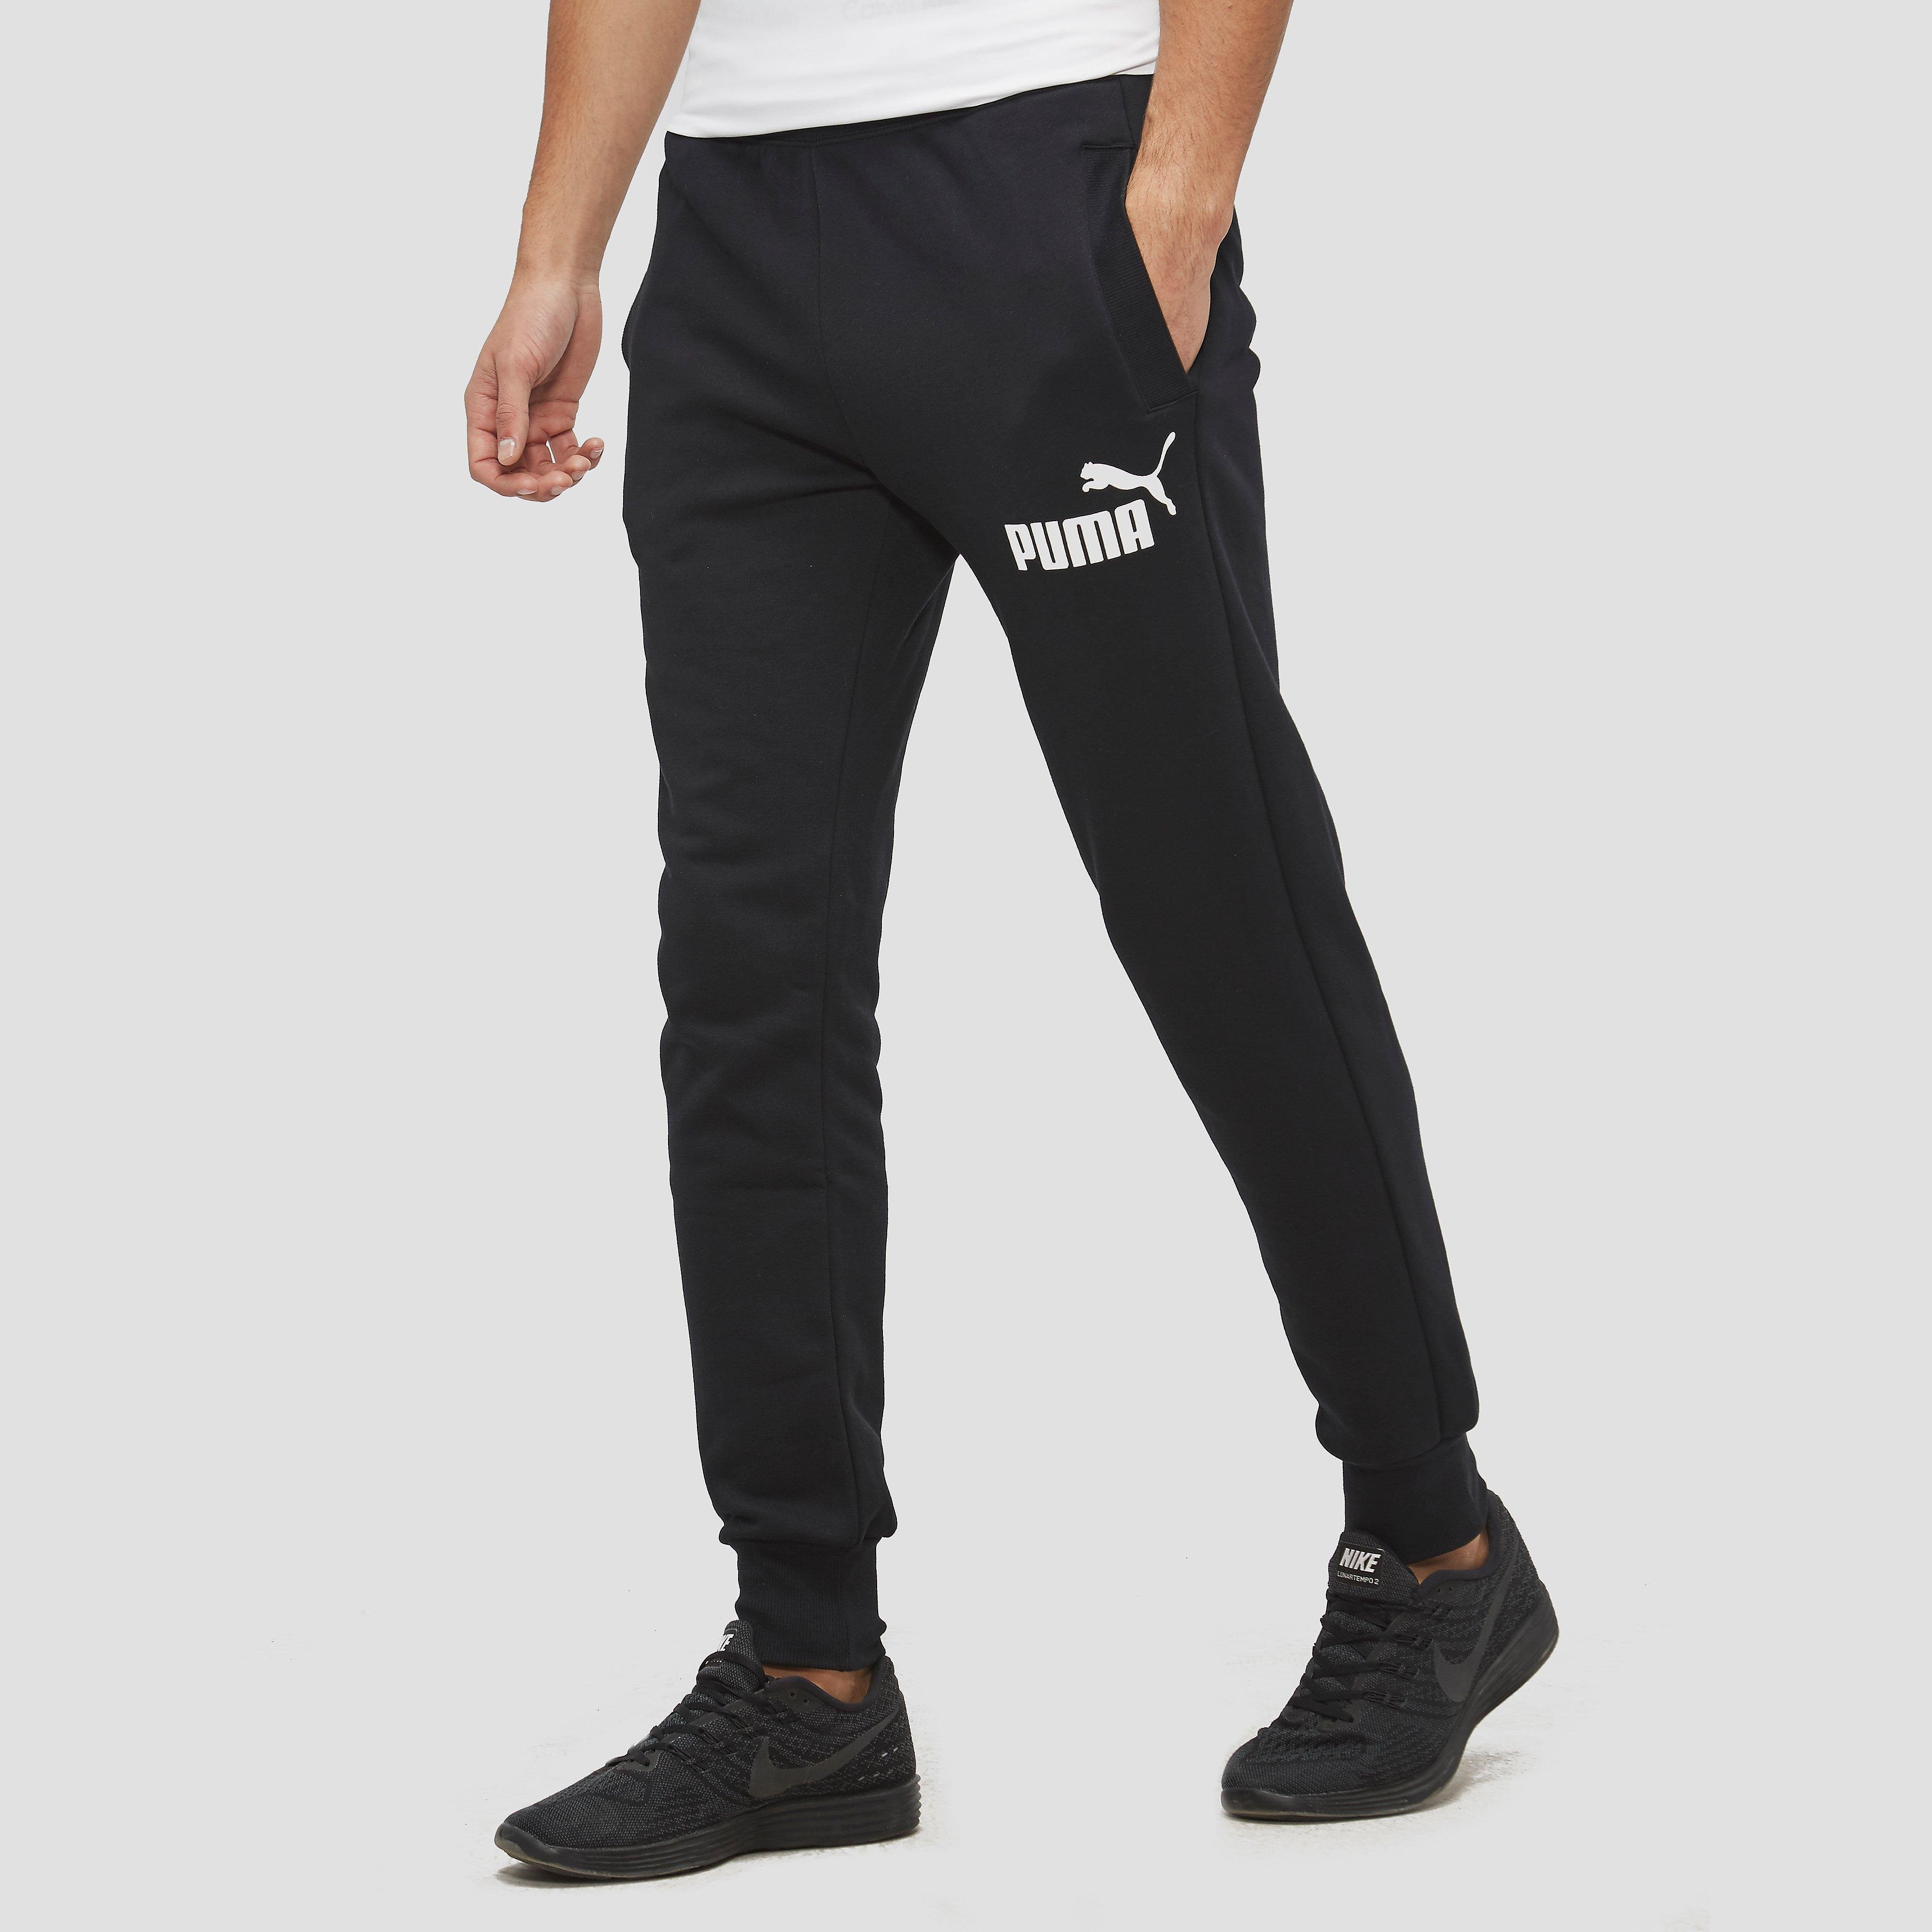 PUMA NO. 1 SWEAT PANTS SLIM